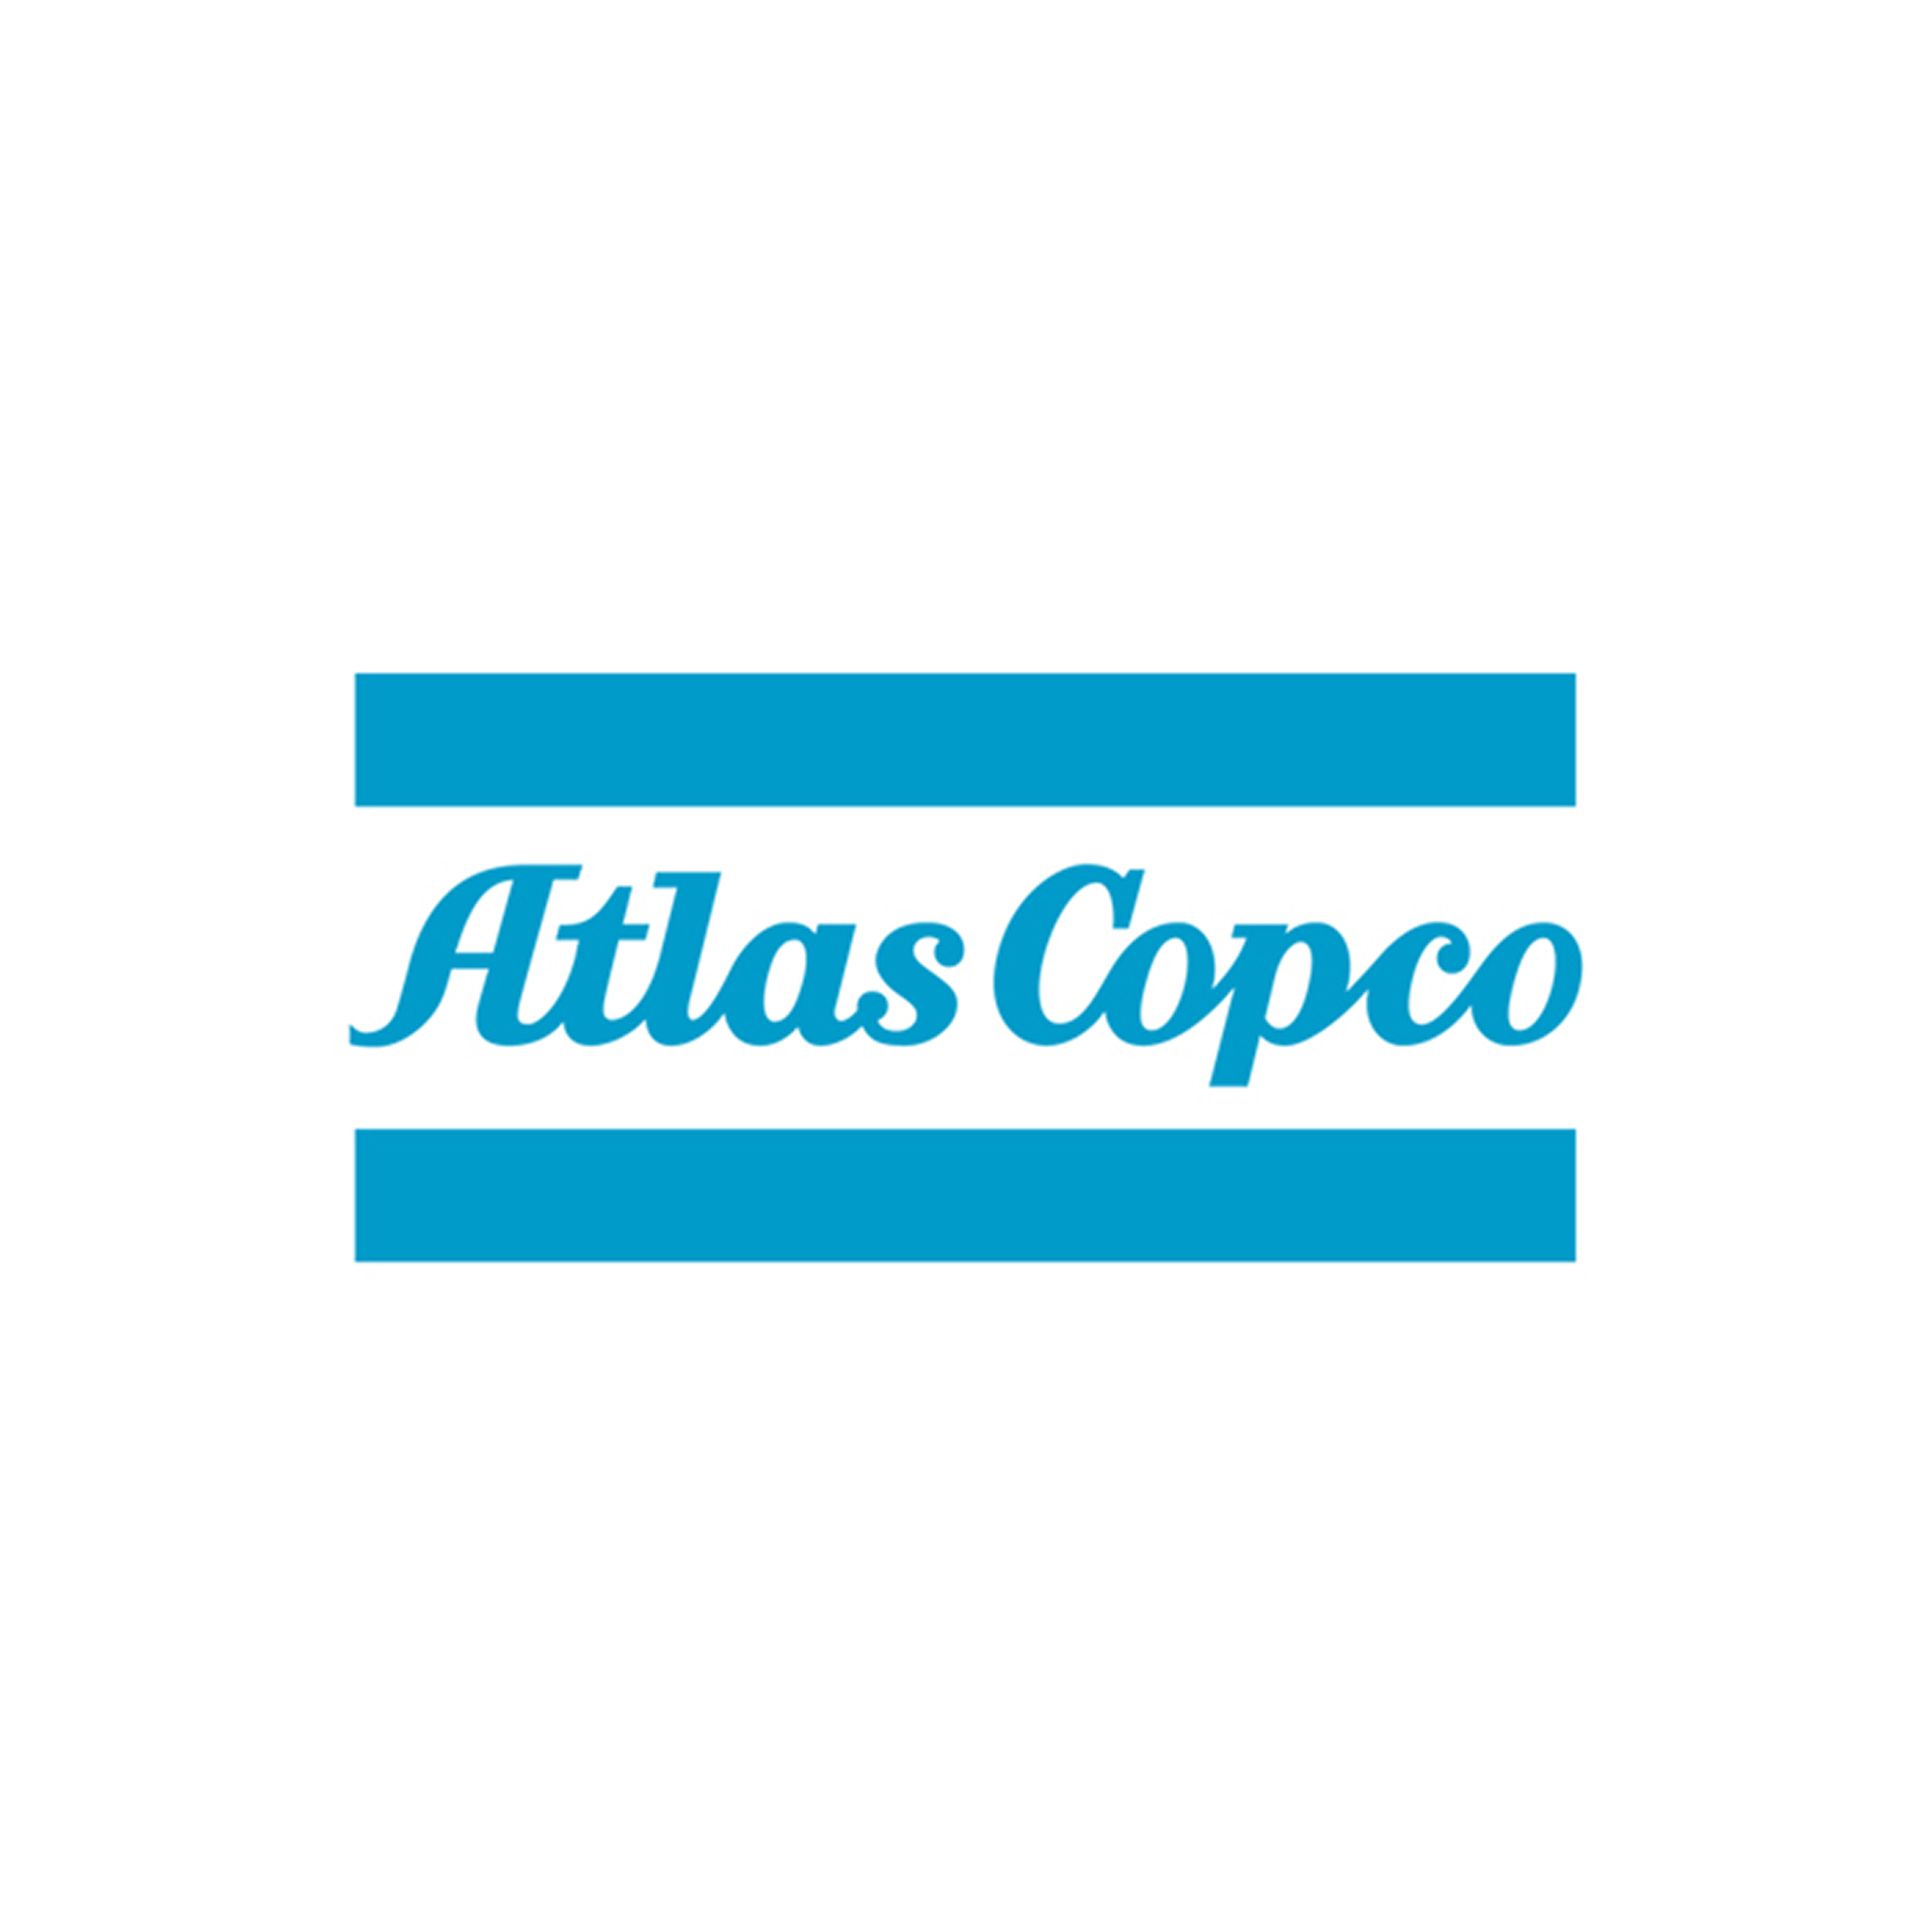 Laser cut Atlas Copco decal. Often used when branding cars, front desks and other areas where your logo shall be seen.